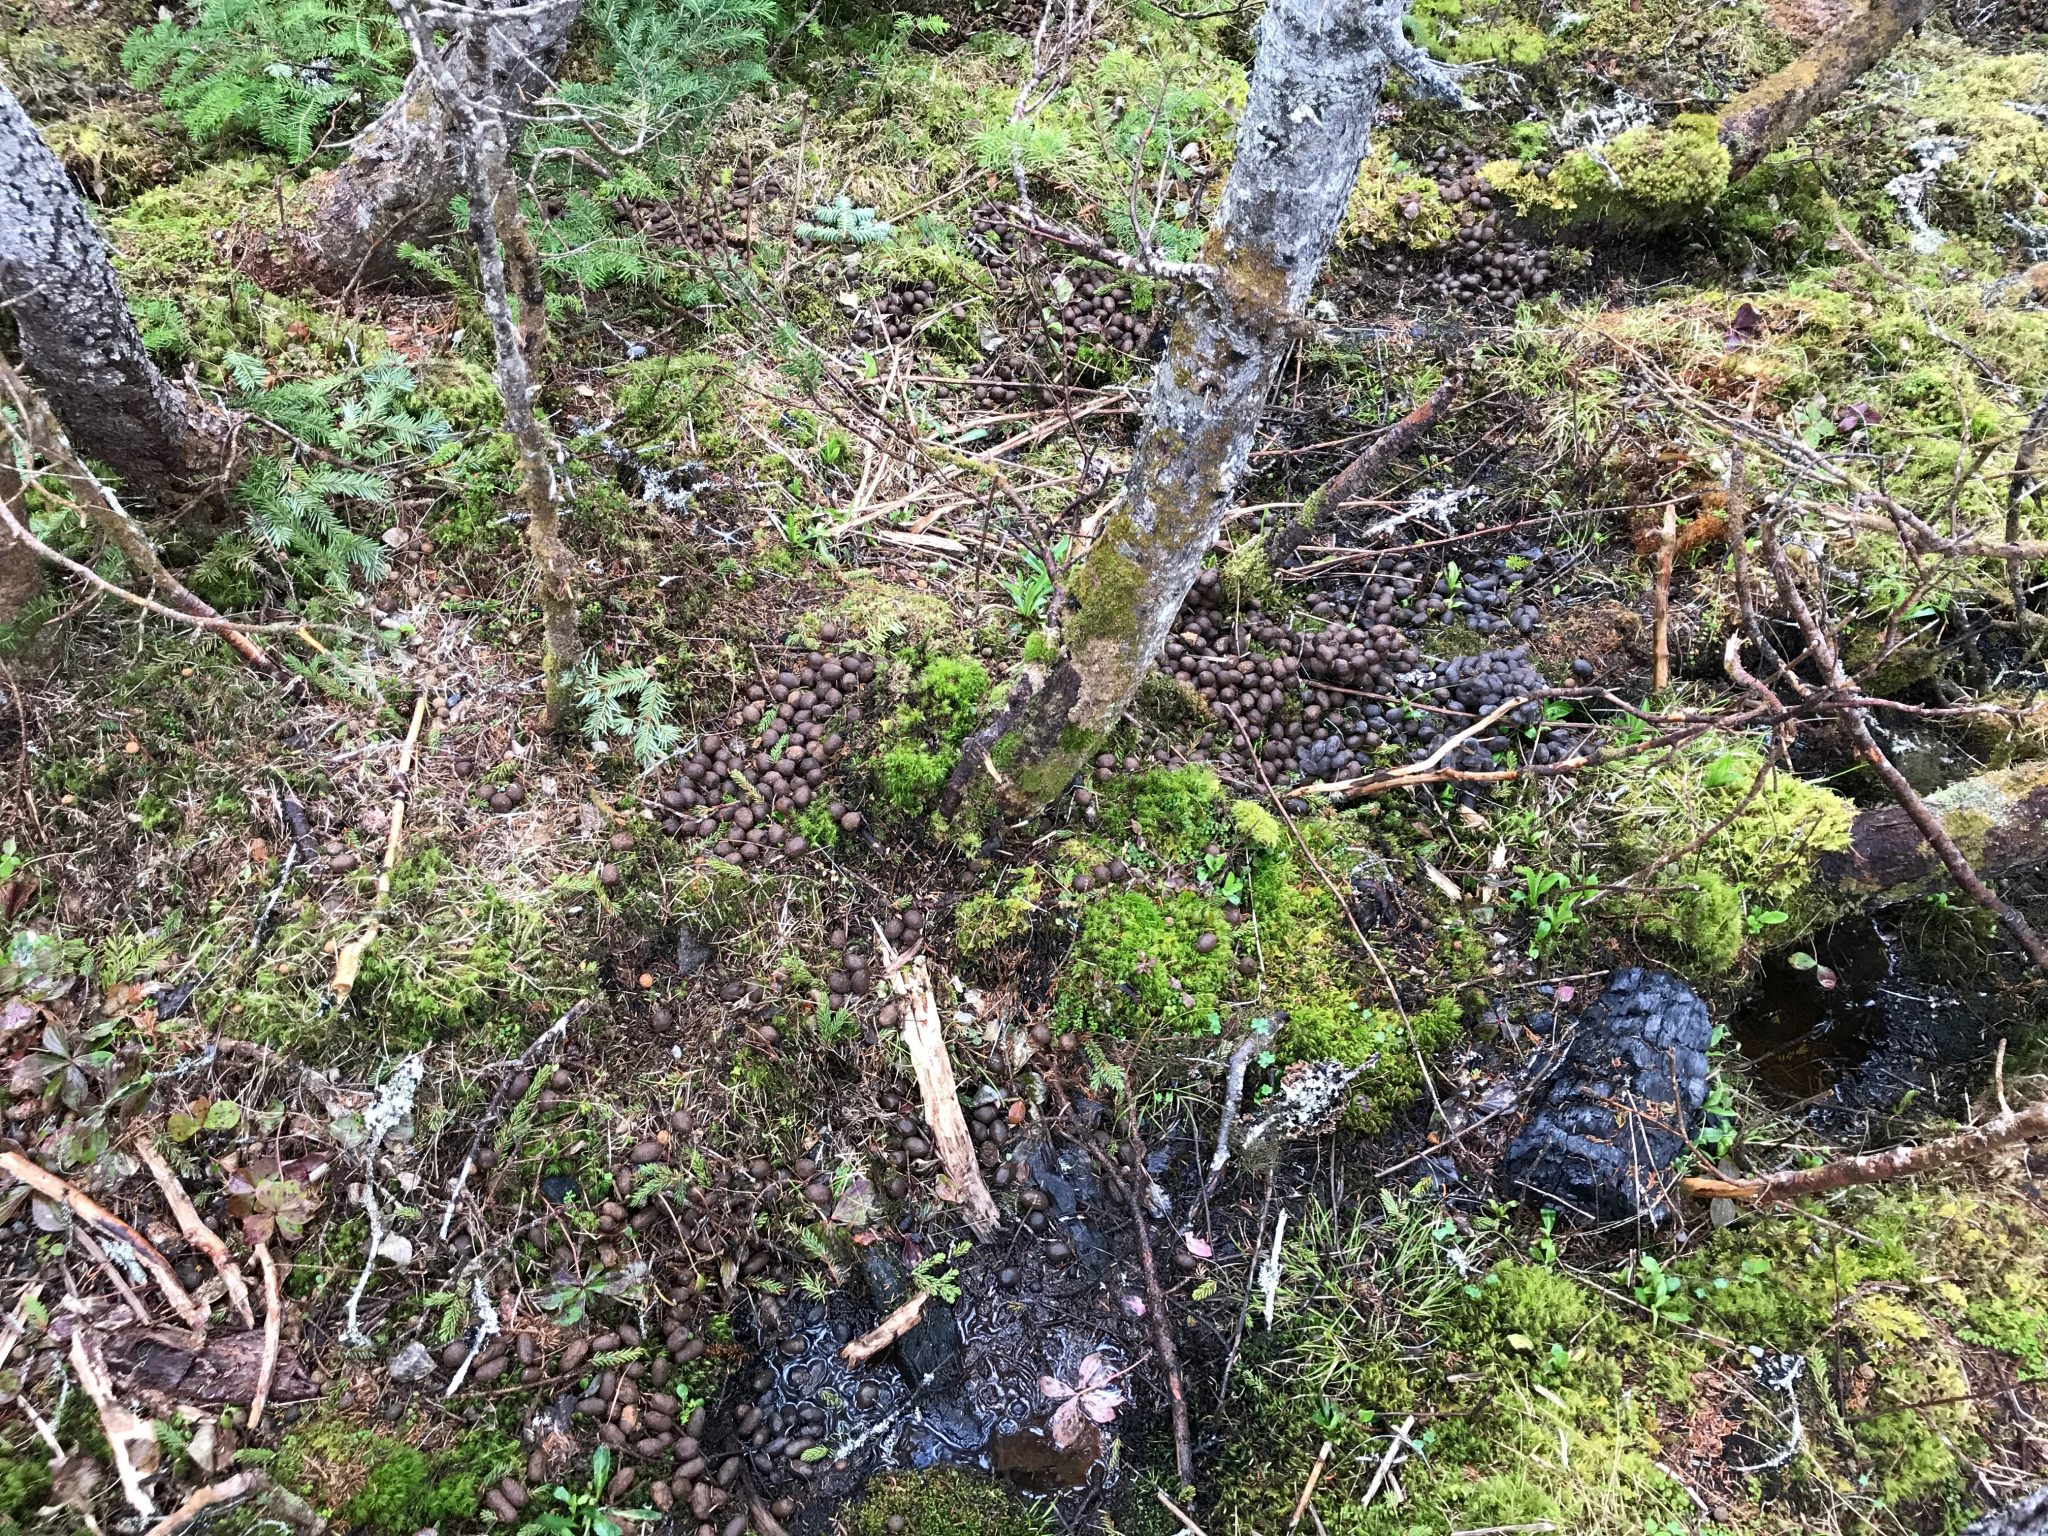 Moose droppings i Pistolet Bay Provincial Park